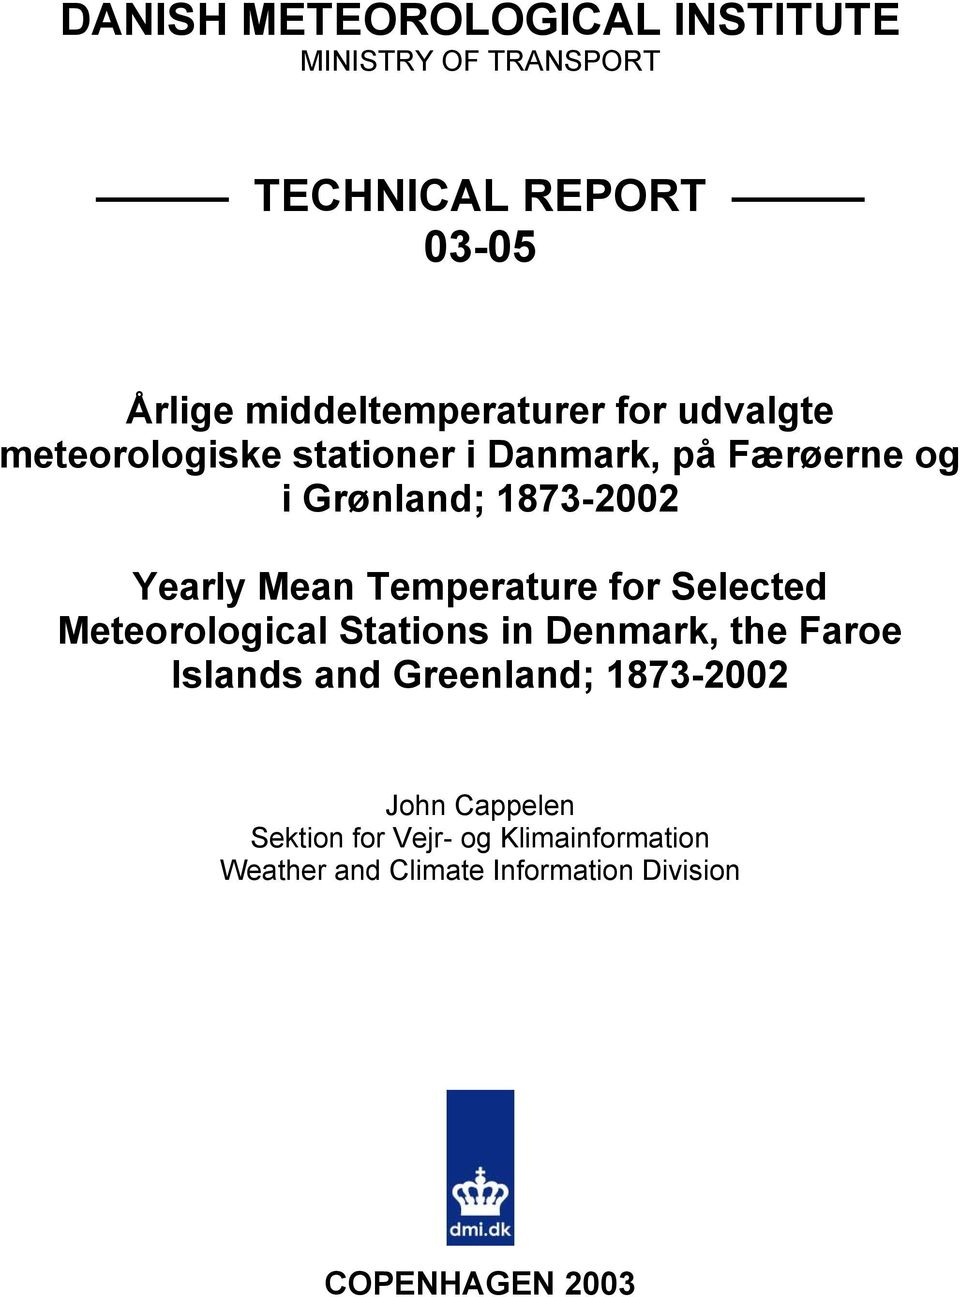 Temperature for Selected Meteorological Stations in Denmark, the Faroe Islands and Greenland; 1873-2002